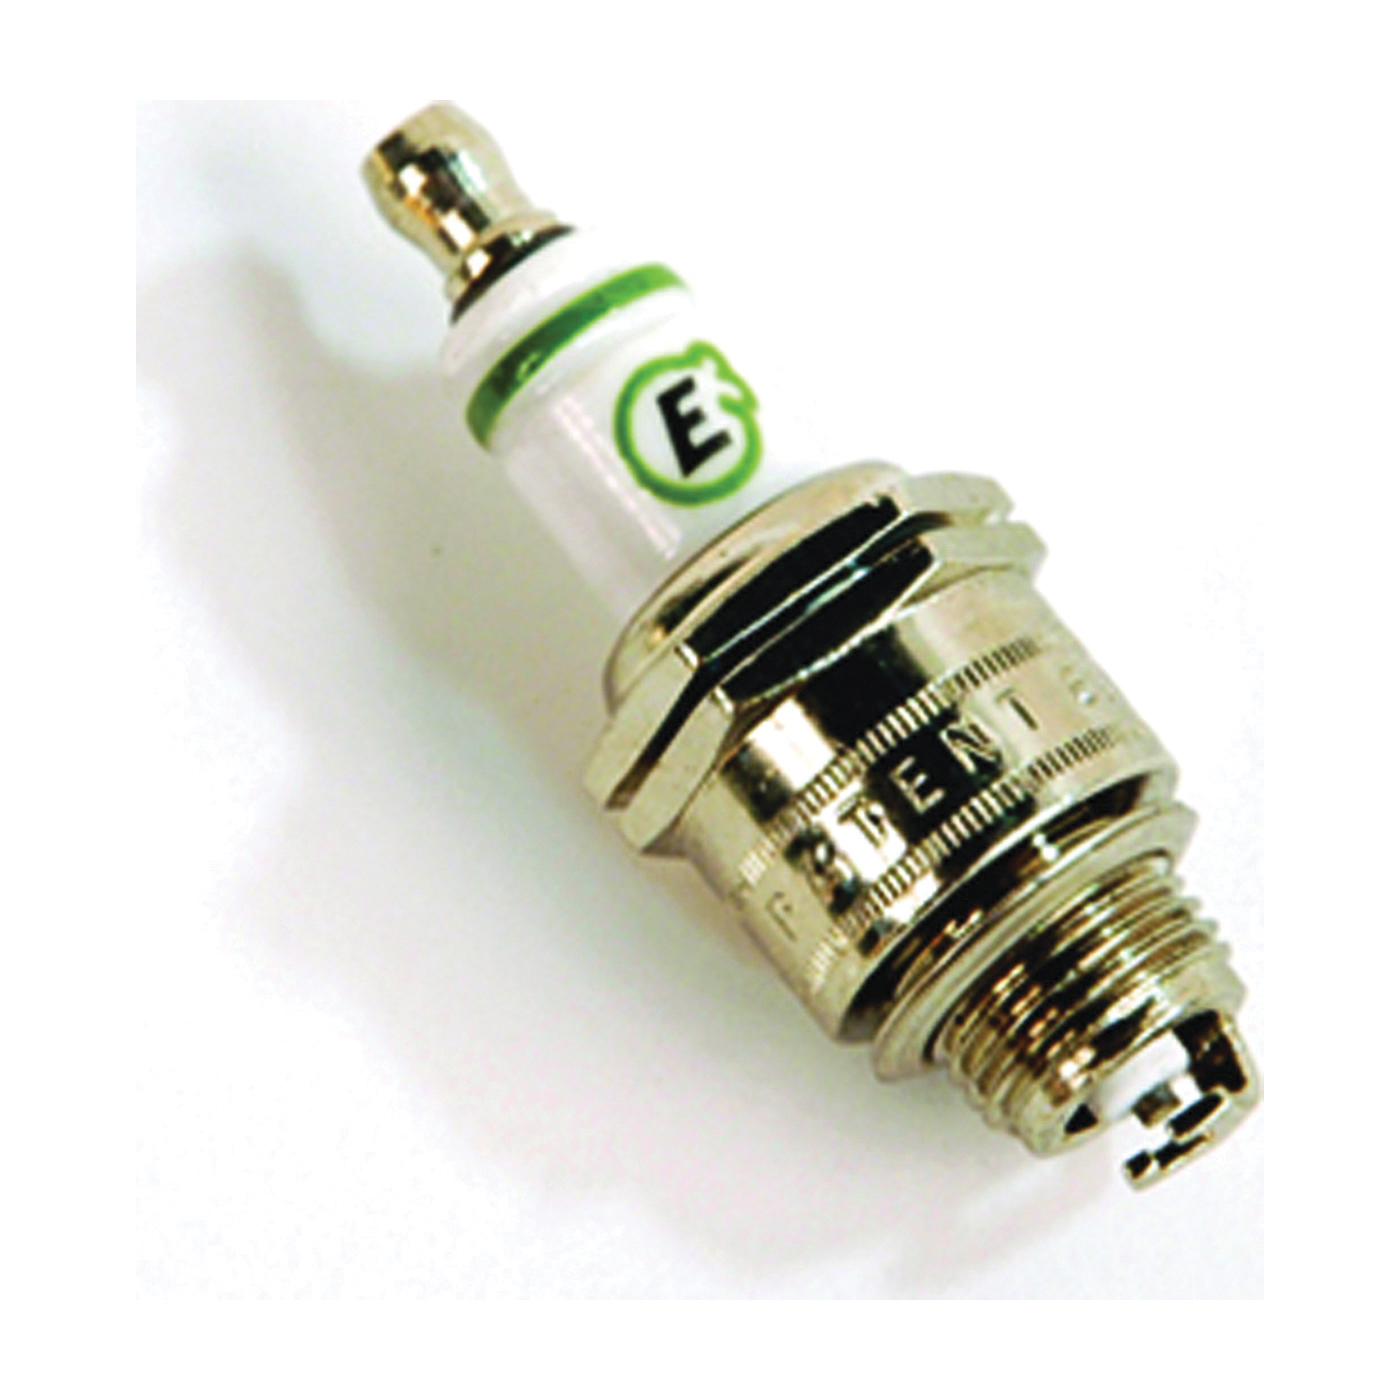 Picture of MTD E3.10 Spark Plug, 13/16 in Fill Gap, 0.551 in Thread, 13/16 in Hex